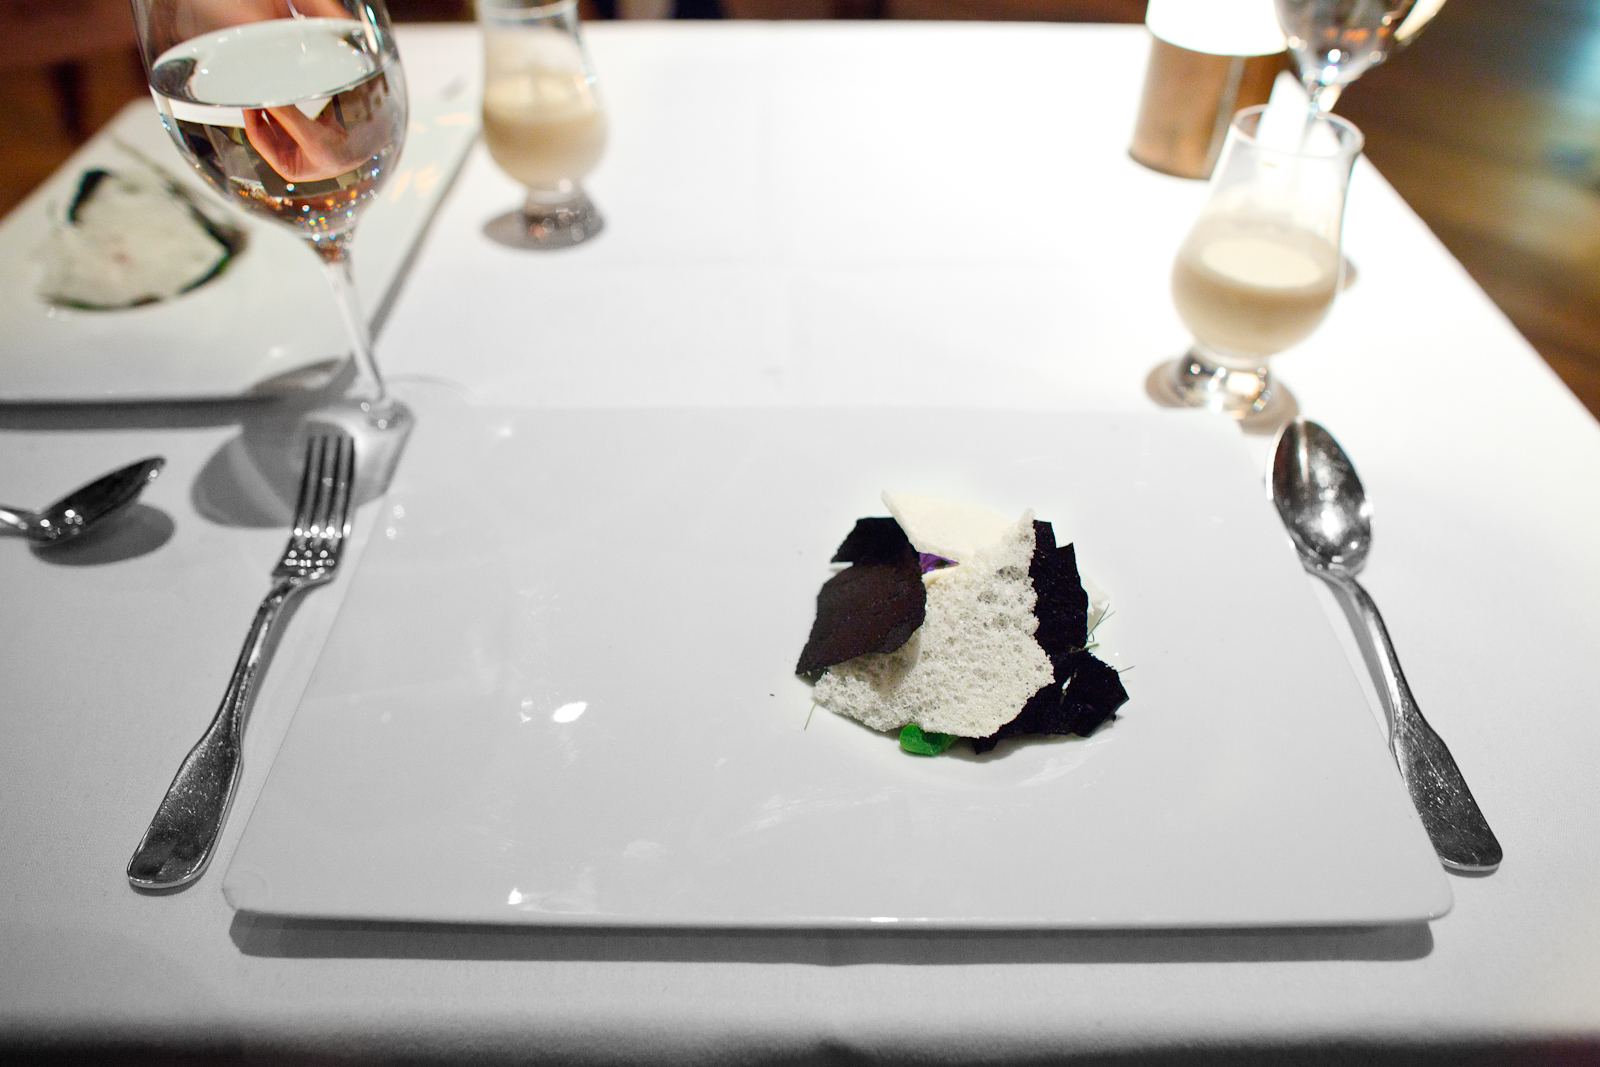 10th Course: Cookies and cream